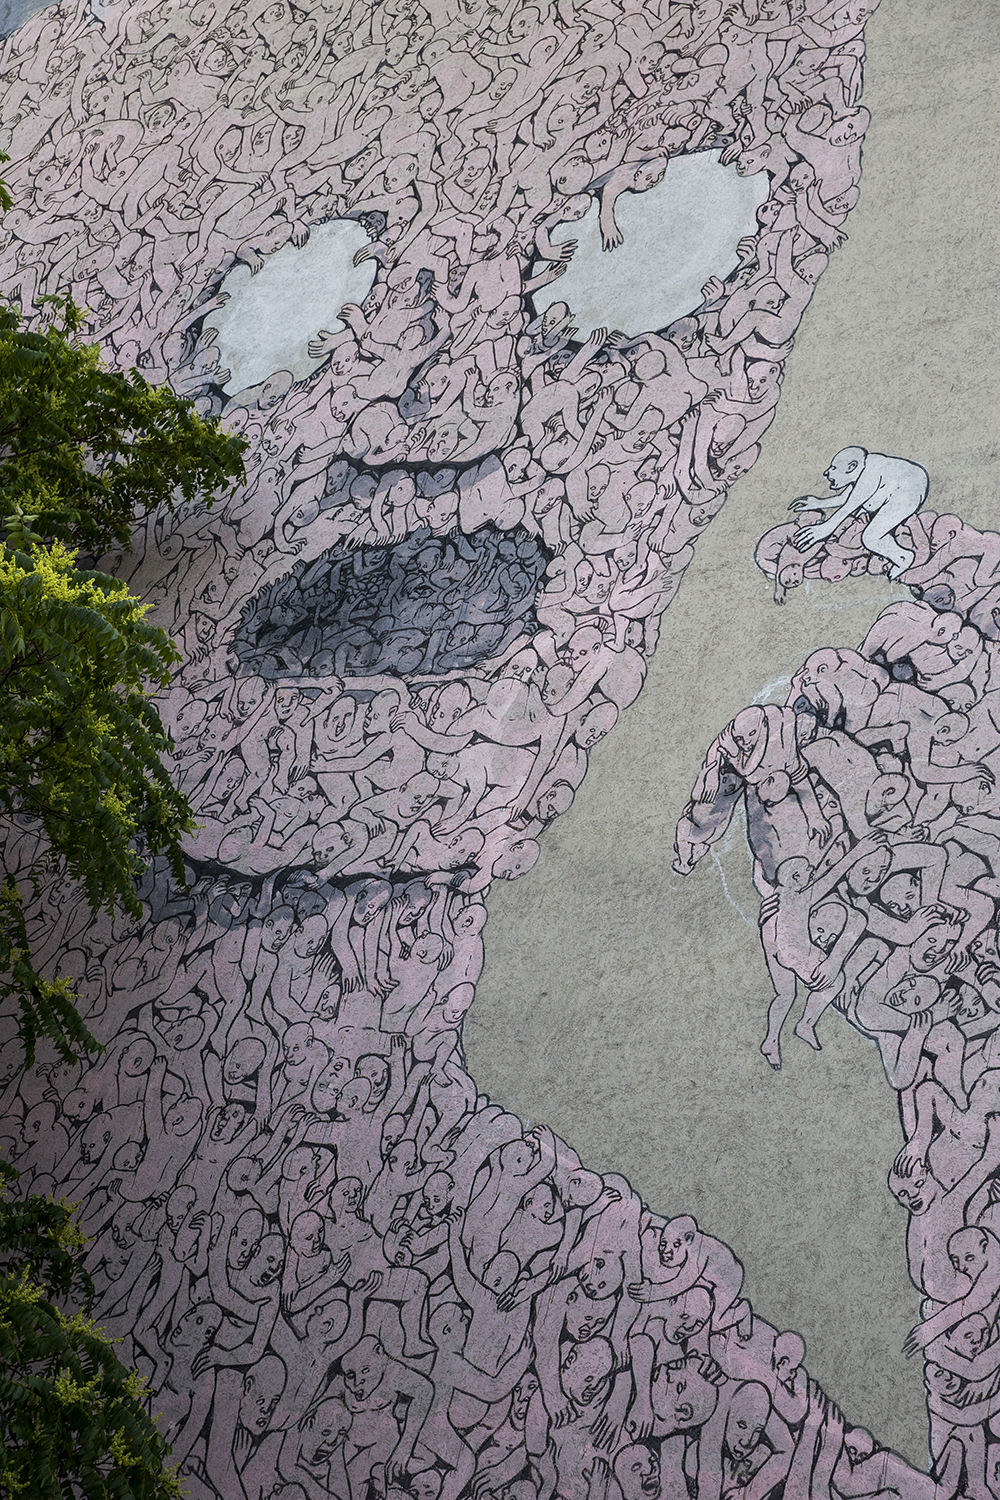 Berlinspiration: The Ultimate Guide to Our Students' Top 5 Berlin Areas   Pink Man BLU Kreuzberg by Dominic Blewett